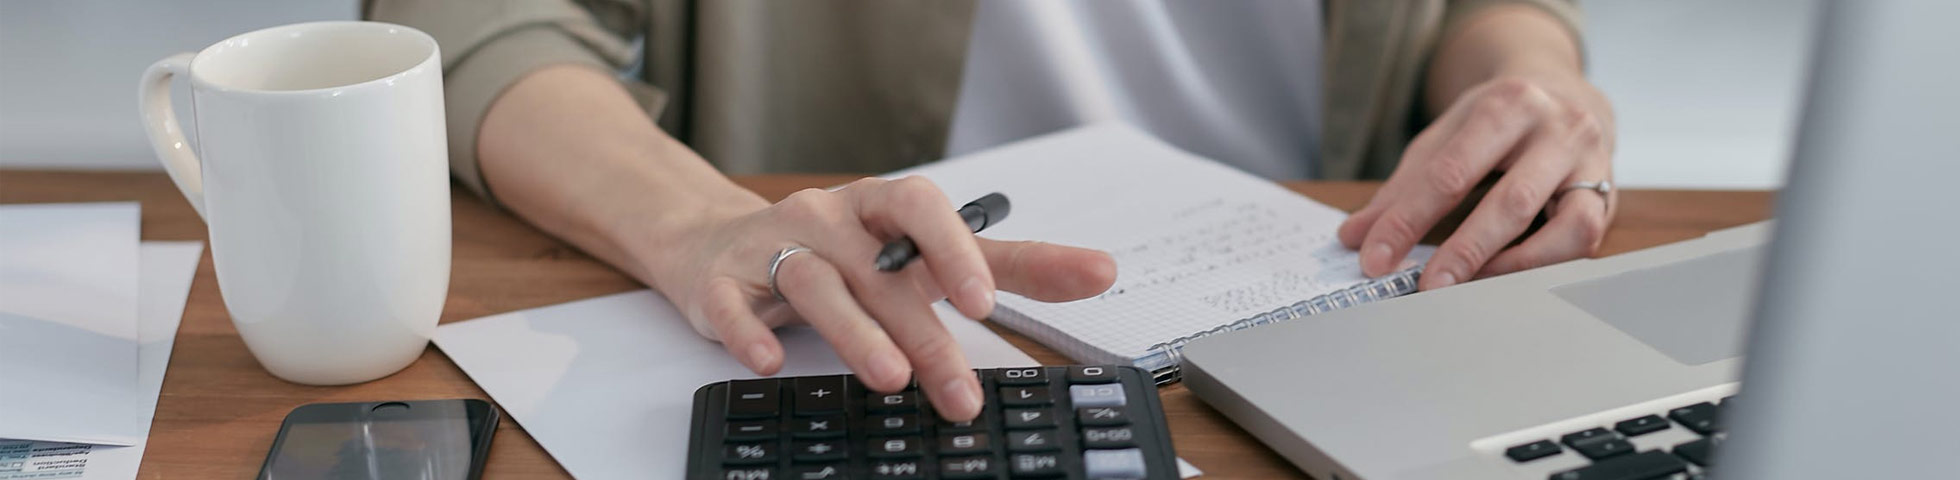 Woman working on a computer, using a calculator.